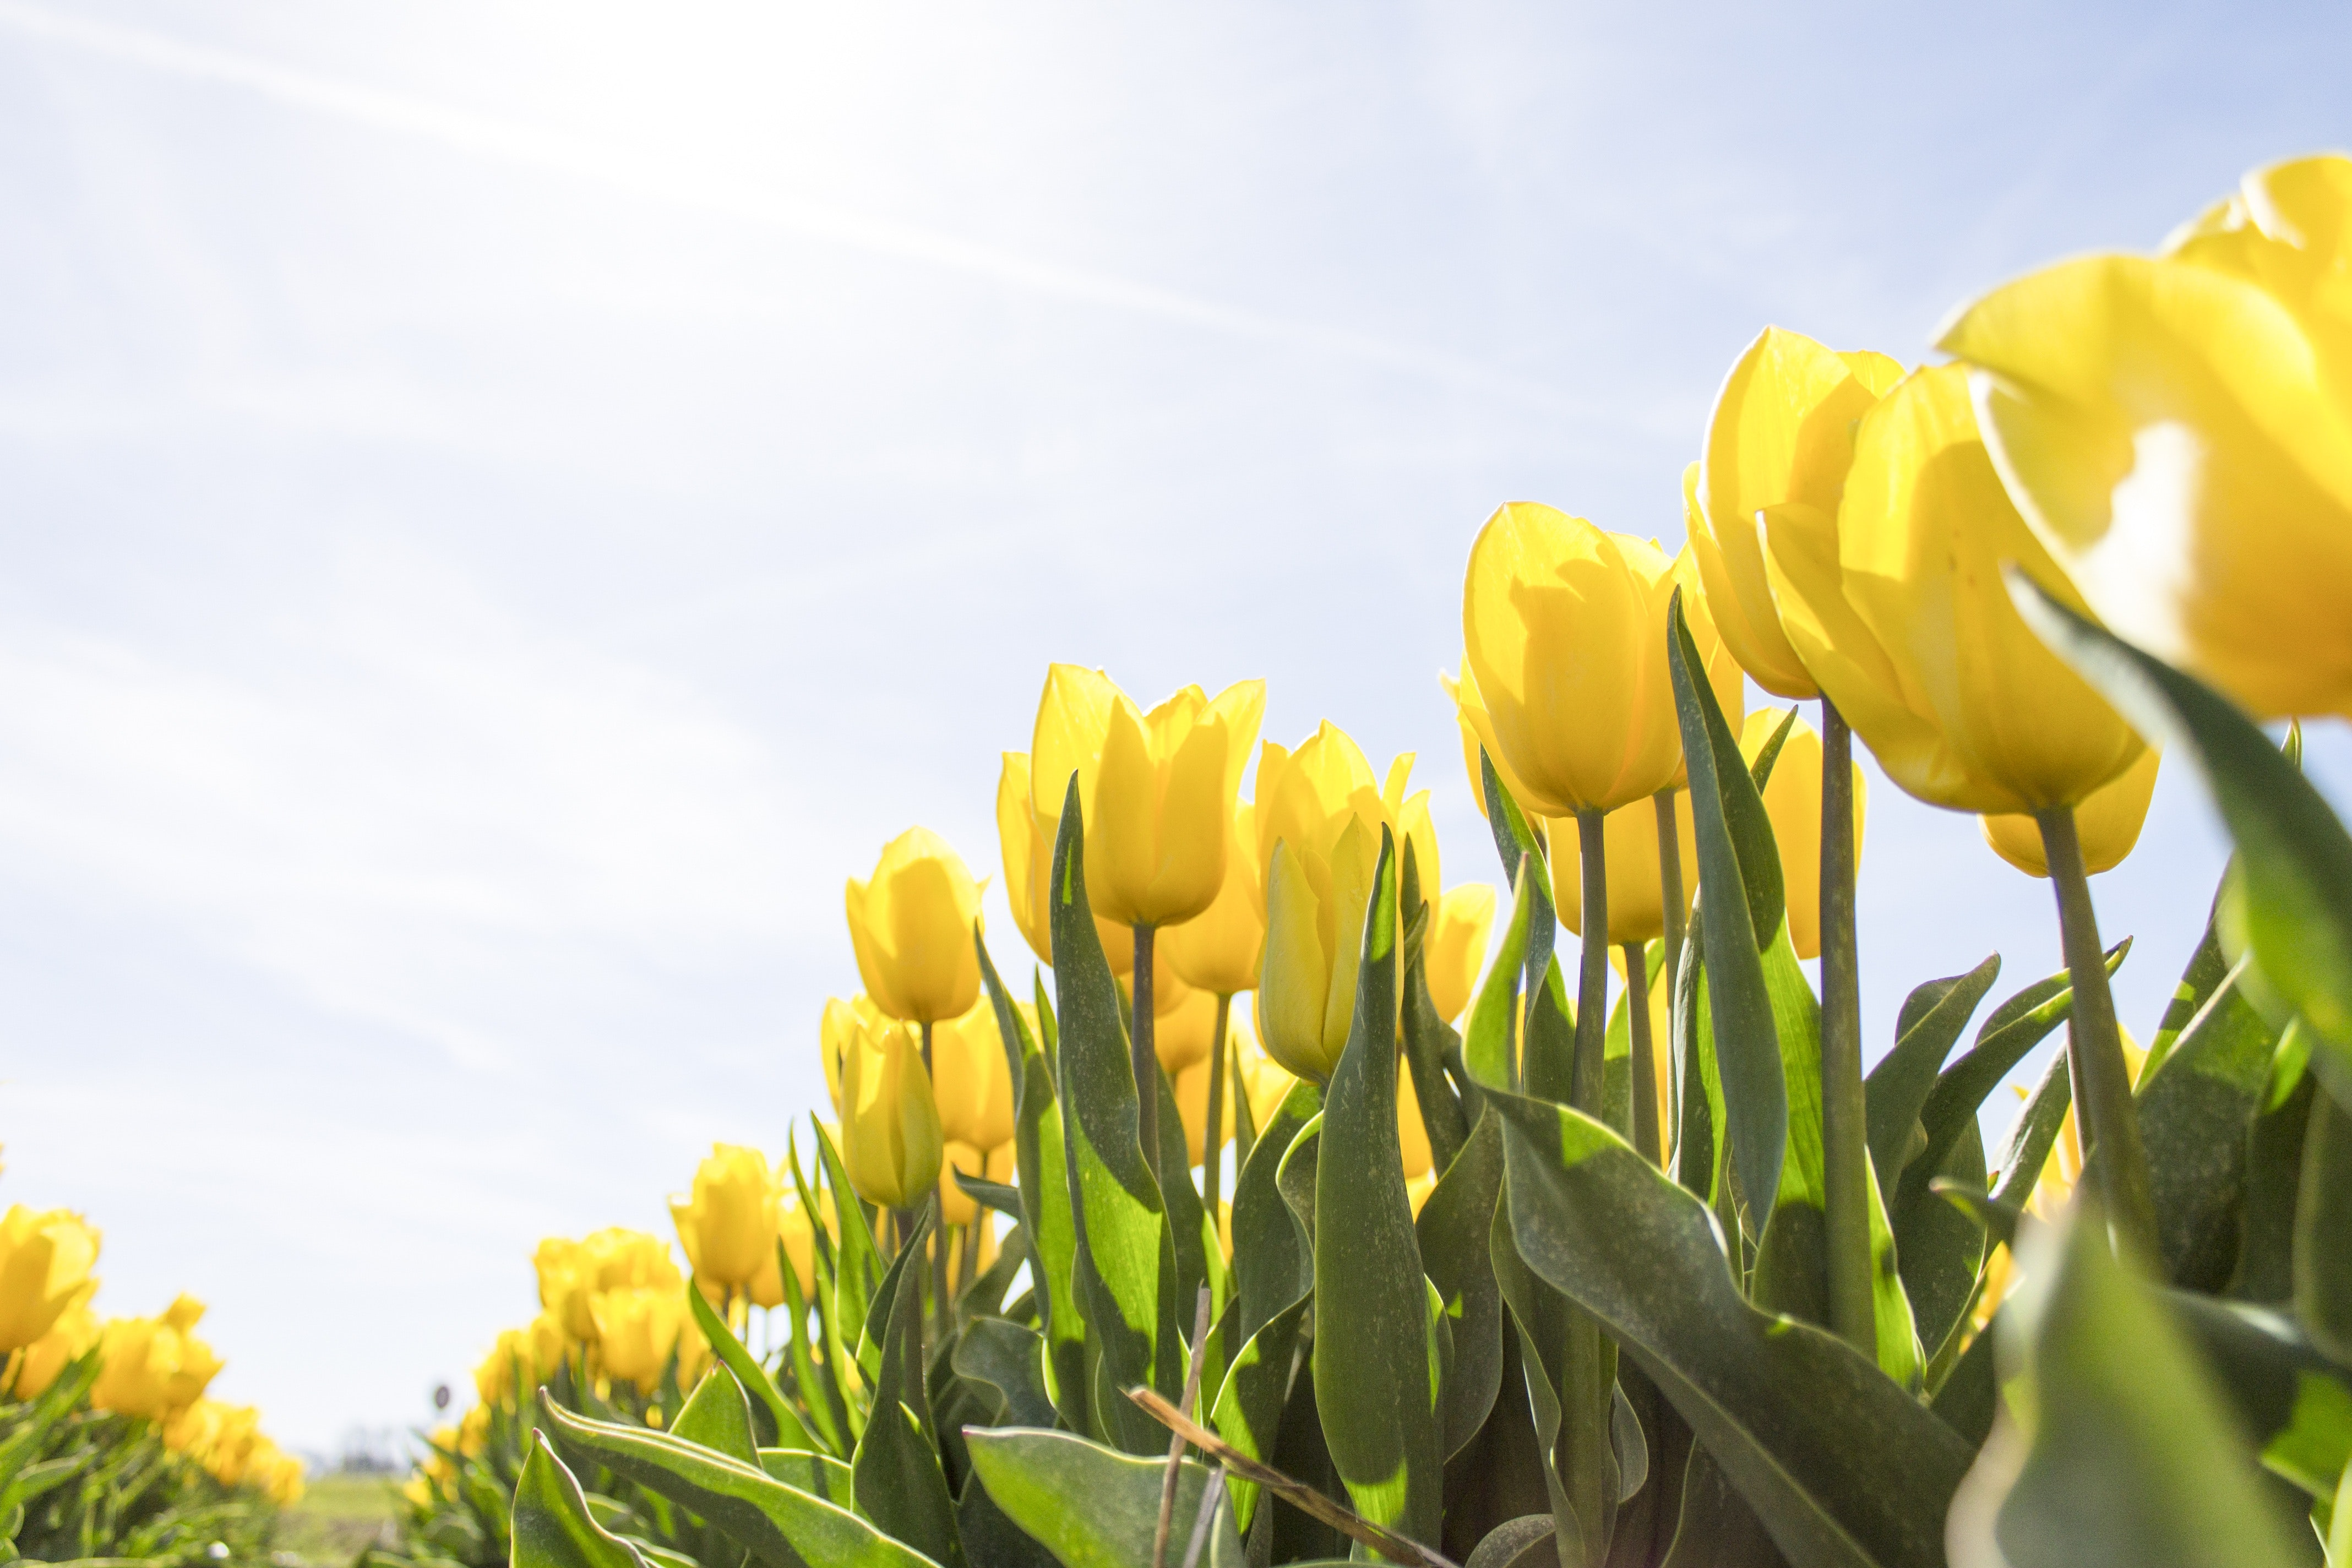 Yellow Tulip Flower Field during Daytime, Beautiful, Summer, Growth, Outdoors, HQ Photo